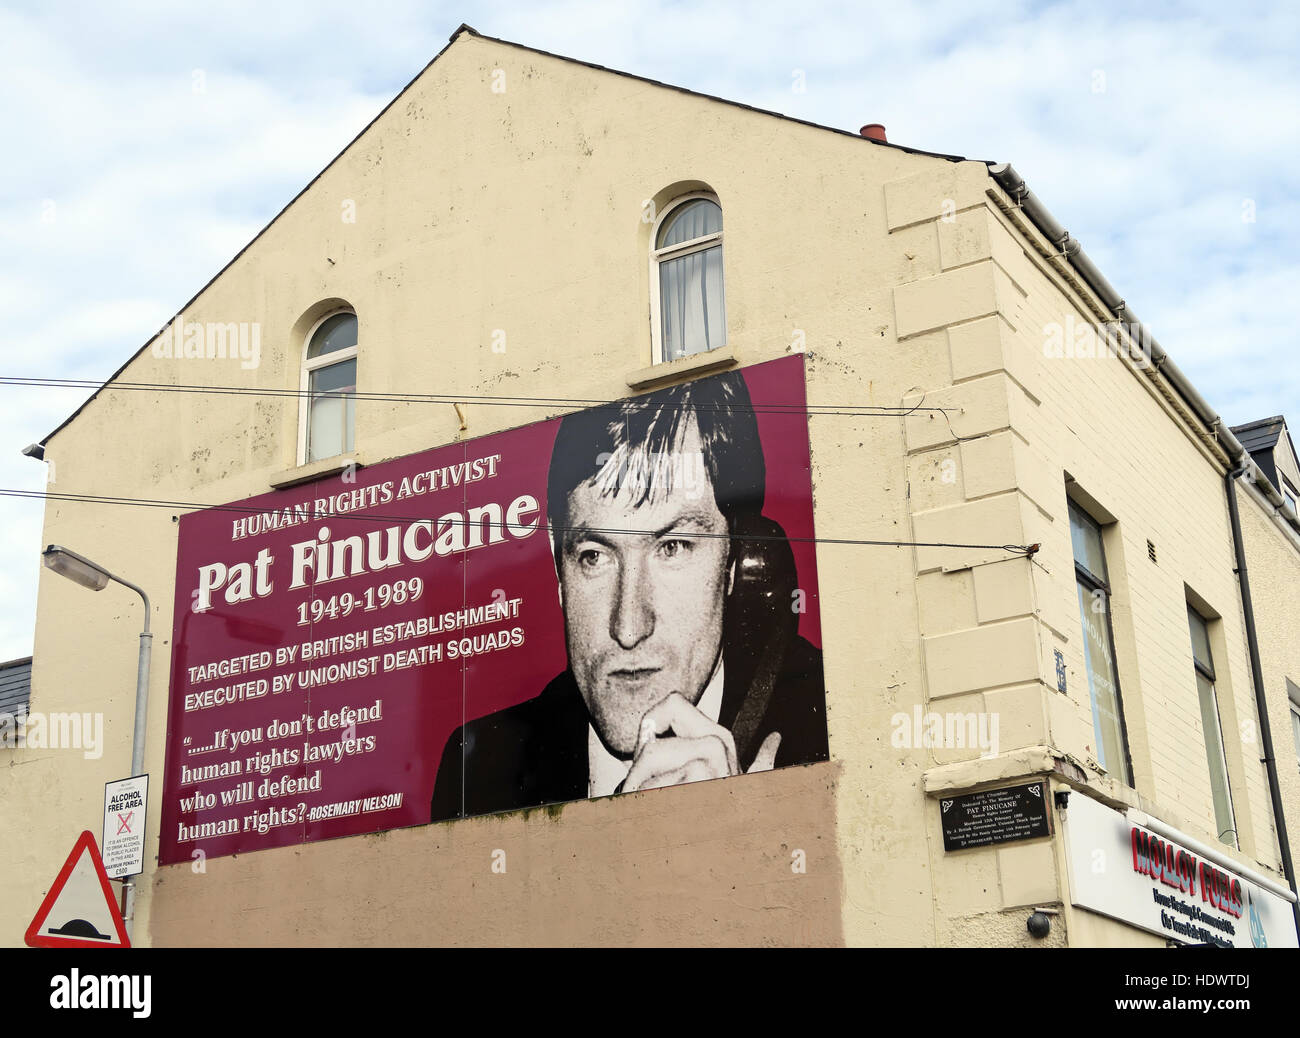 Road,painting,graffiti,resistance,IRA,peace,Northern Ireland,NI,UK,St,street,Eire,Irish,Republic,Irish Republic,conflict,Irish Republican Army,Political Change,Human Rights activist,Pat Finucane,Human Rights,catholic,community,catholics,Belfast Catholic Community,GoTonySmith,@HotpixUK,Tony,Smith,UK,GB,Great,Britain,United,Kingdom,Irish,British,Ireland,problem,with,problem with,issue with,NI,Northern,Northern Ireland,Belfast,City,Centre,Art,Artists,the,troubles,The Troubles,Good Friday Agreement,Peace,honour,painting,wall,walls,tribute,republicanism,Fight,Justice,West,Beal,feirste,martyrs,social,tour,tourism,tourists,urban,six,counties,6,backdrop,county,Antrim,occupation,good,Friday,agreement,peace,reconciliation,IRA,terror,terrorists,genocide,Buy Pictures of,Buy Images Of,Images of,Stock Images,Tony Smith,United Kingdom,Great Britain,British Isles,republican cause,Irish History,Ireland History,Northern Ireland History